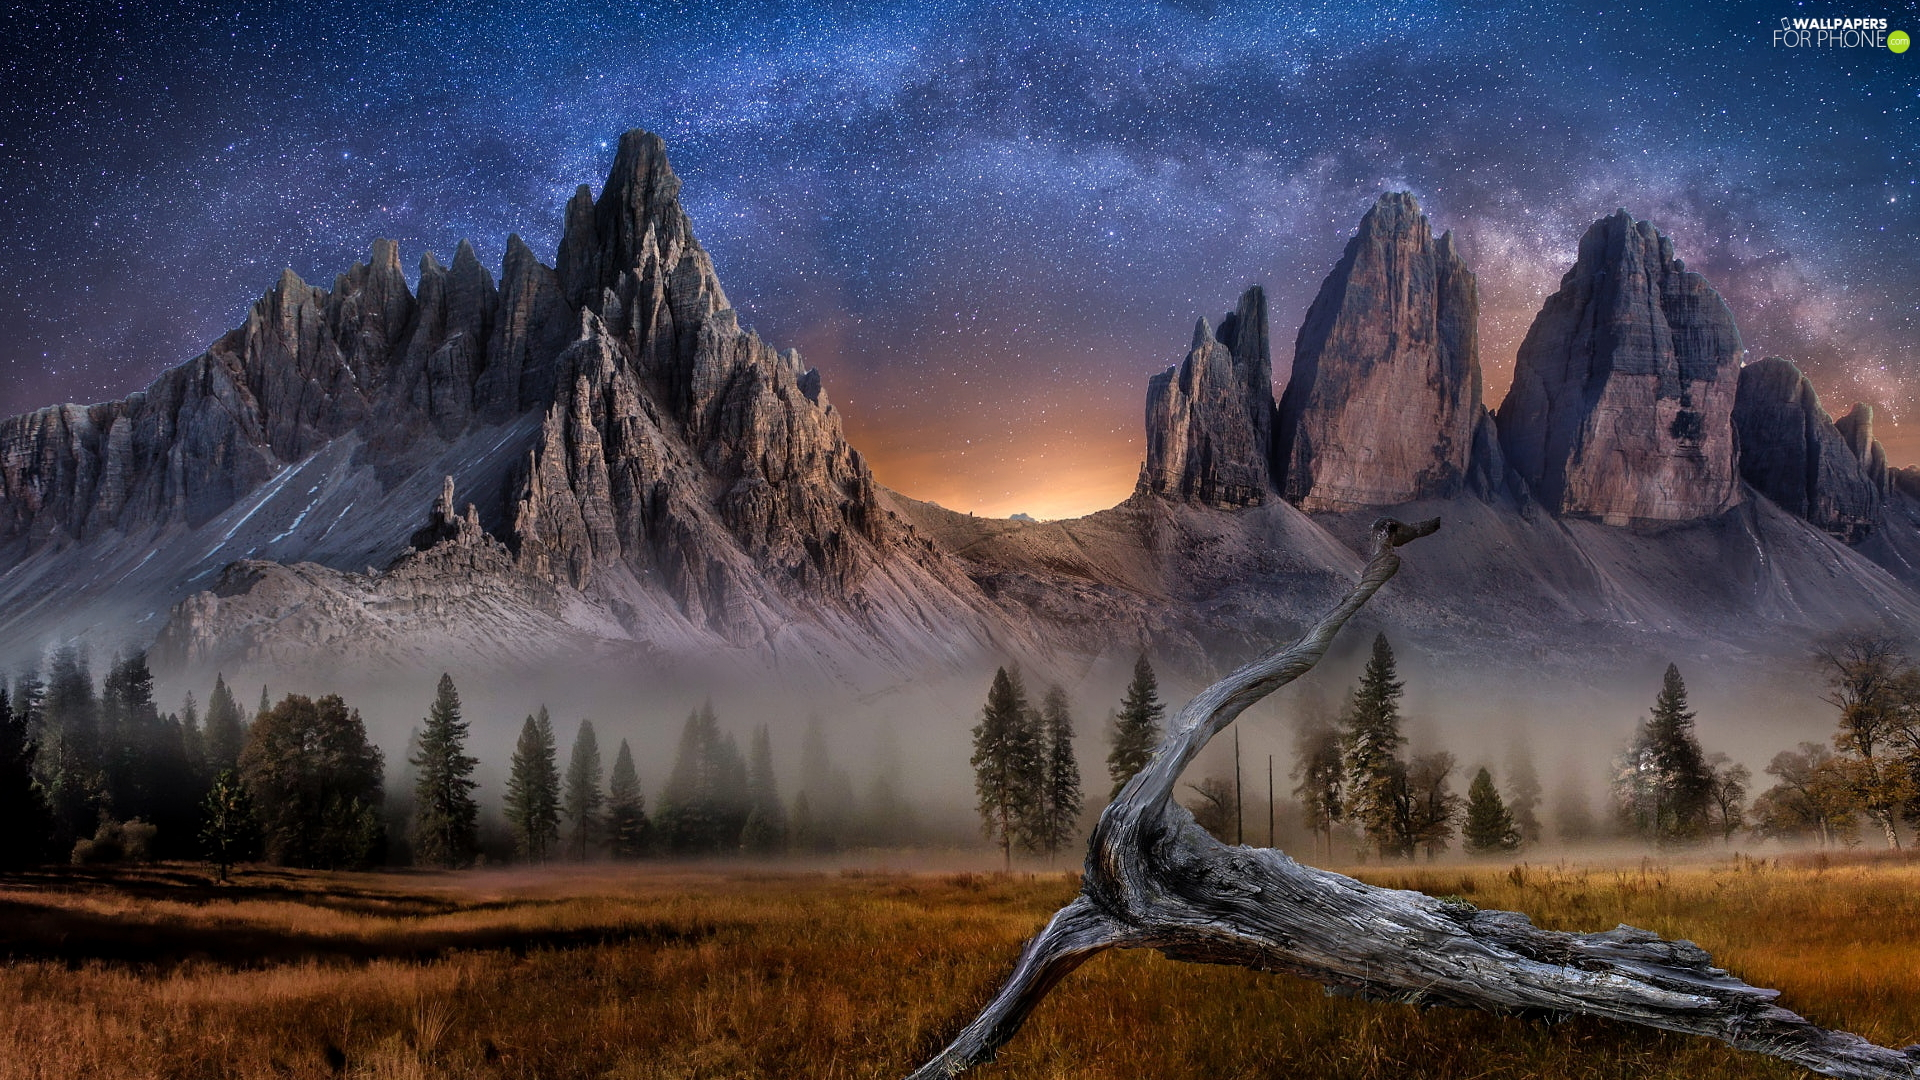 Dolomites, Mountains, edifice, Tre Cime di Lavaredo, Province of Belluno, Italy, Star way, Lod on the beach, star